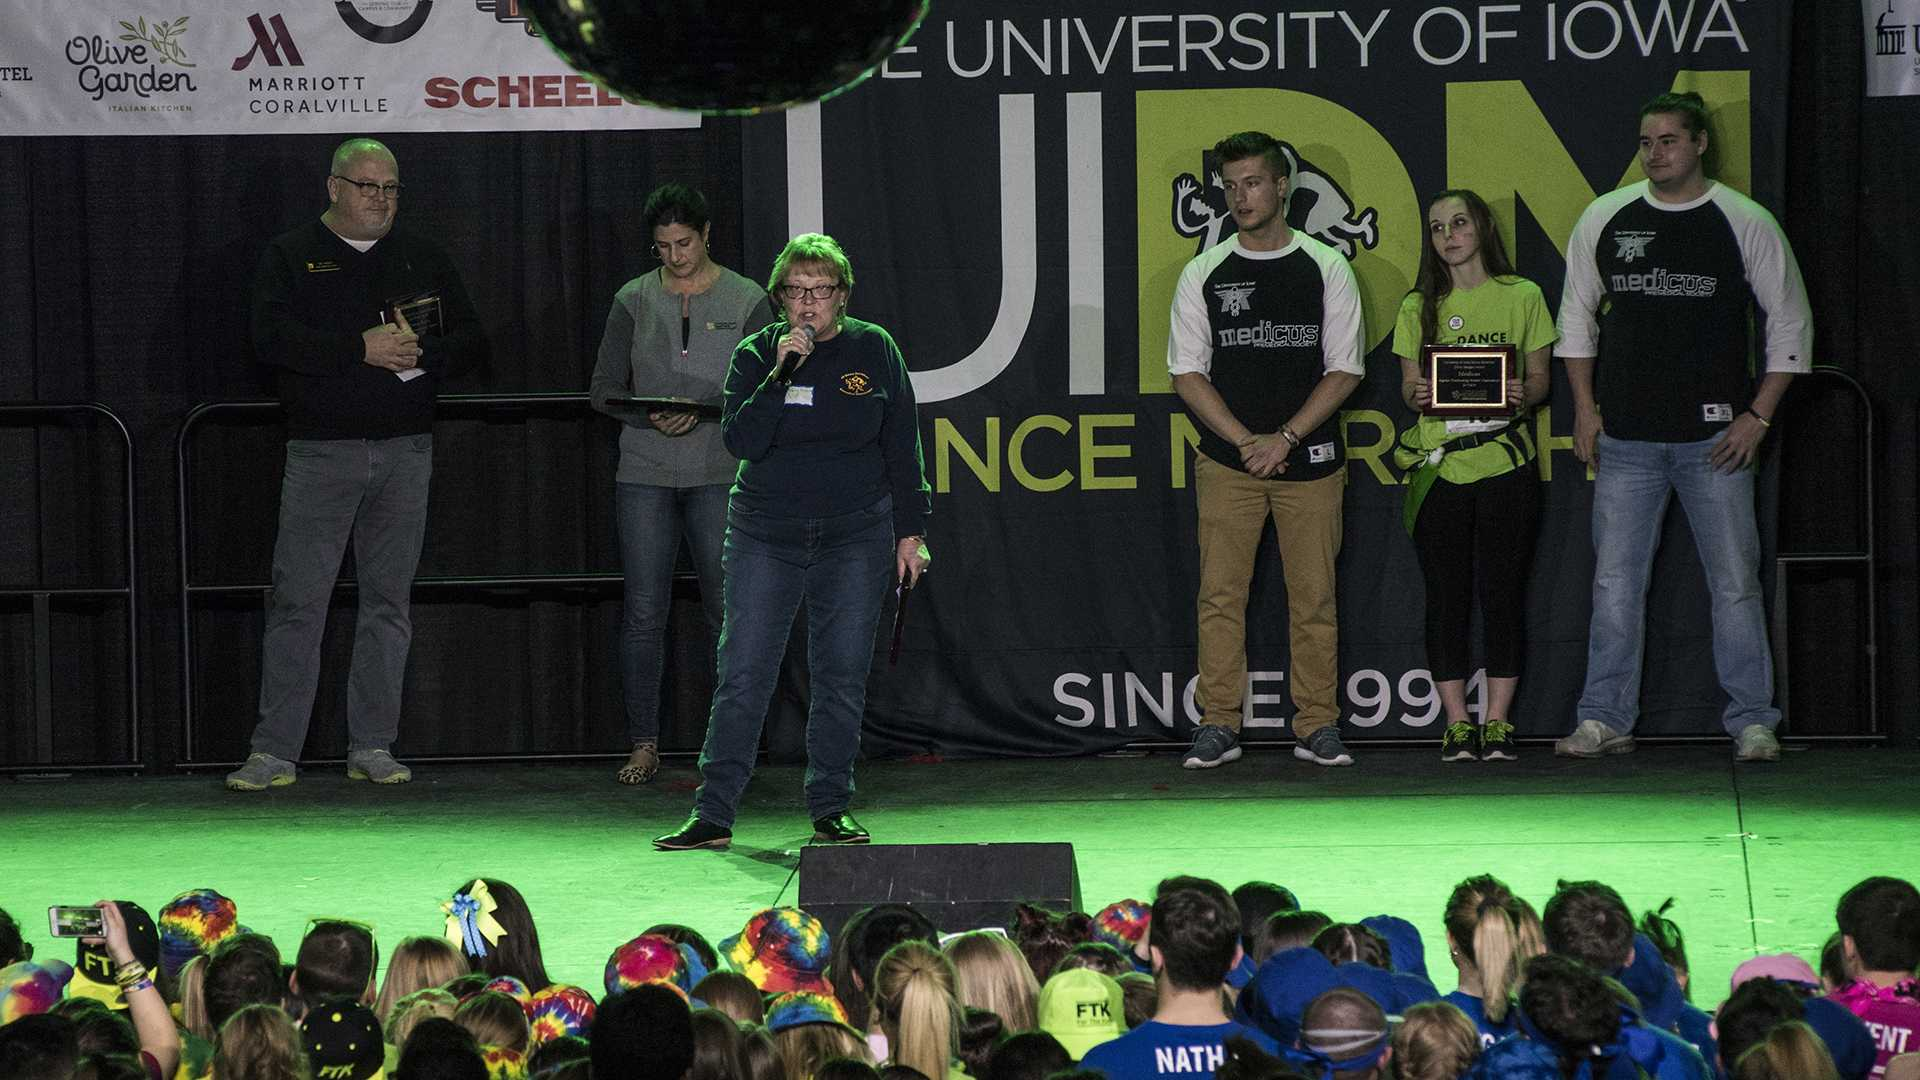 Mary Peterson presents awards for biggest individual fundraising efforts during UI Dance Marathon 24 inside the IMU on Saturday, Feb. 3, 2018. (Ben Allan Smith/The Daily Iowan)